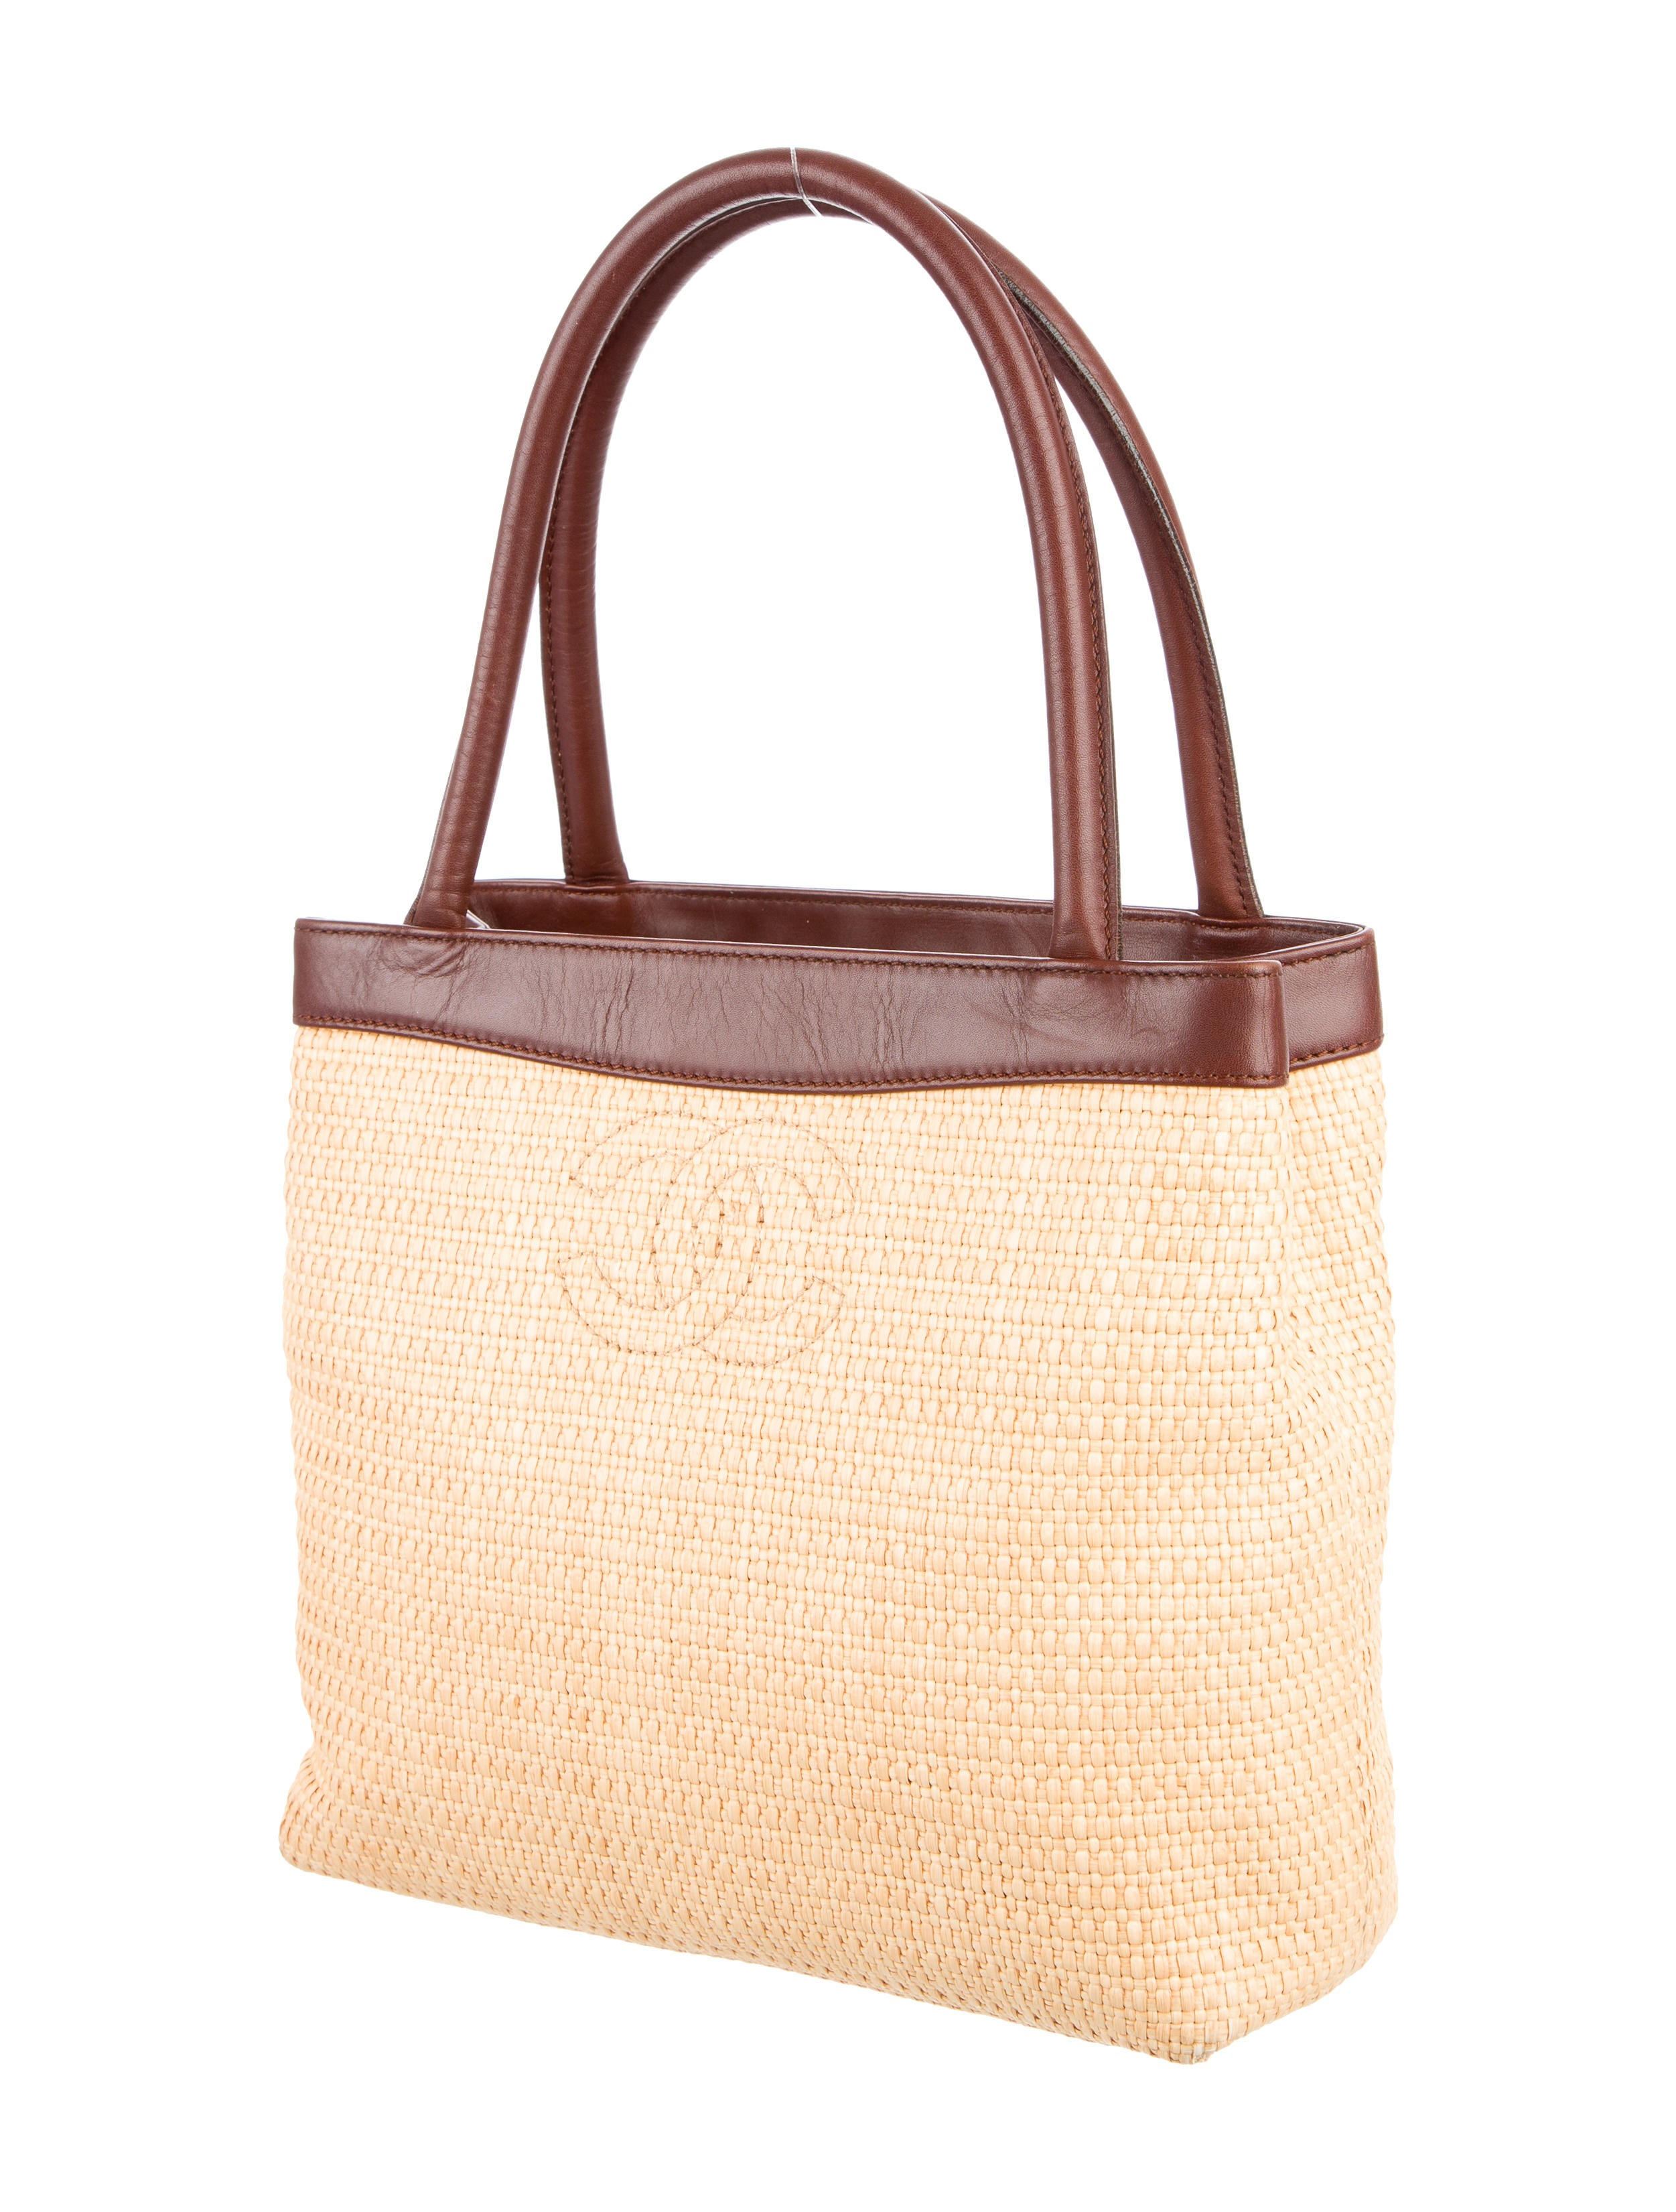 Product - E-collection Straw Tote with Mat Green, • Made of % cotton canvas and straw • Great for a picnic in the park or a day at the beach • Spacious earth friendly tote • Outside pocket for accessories.